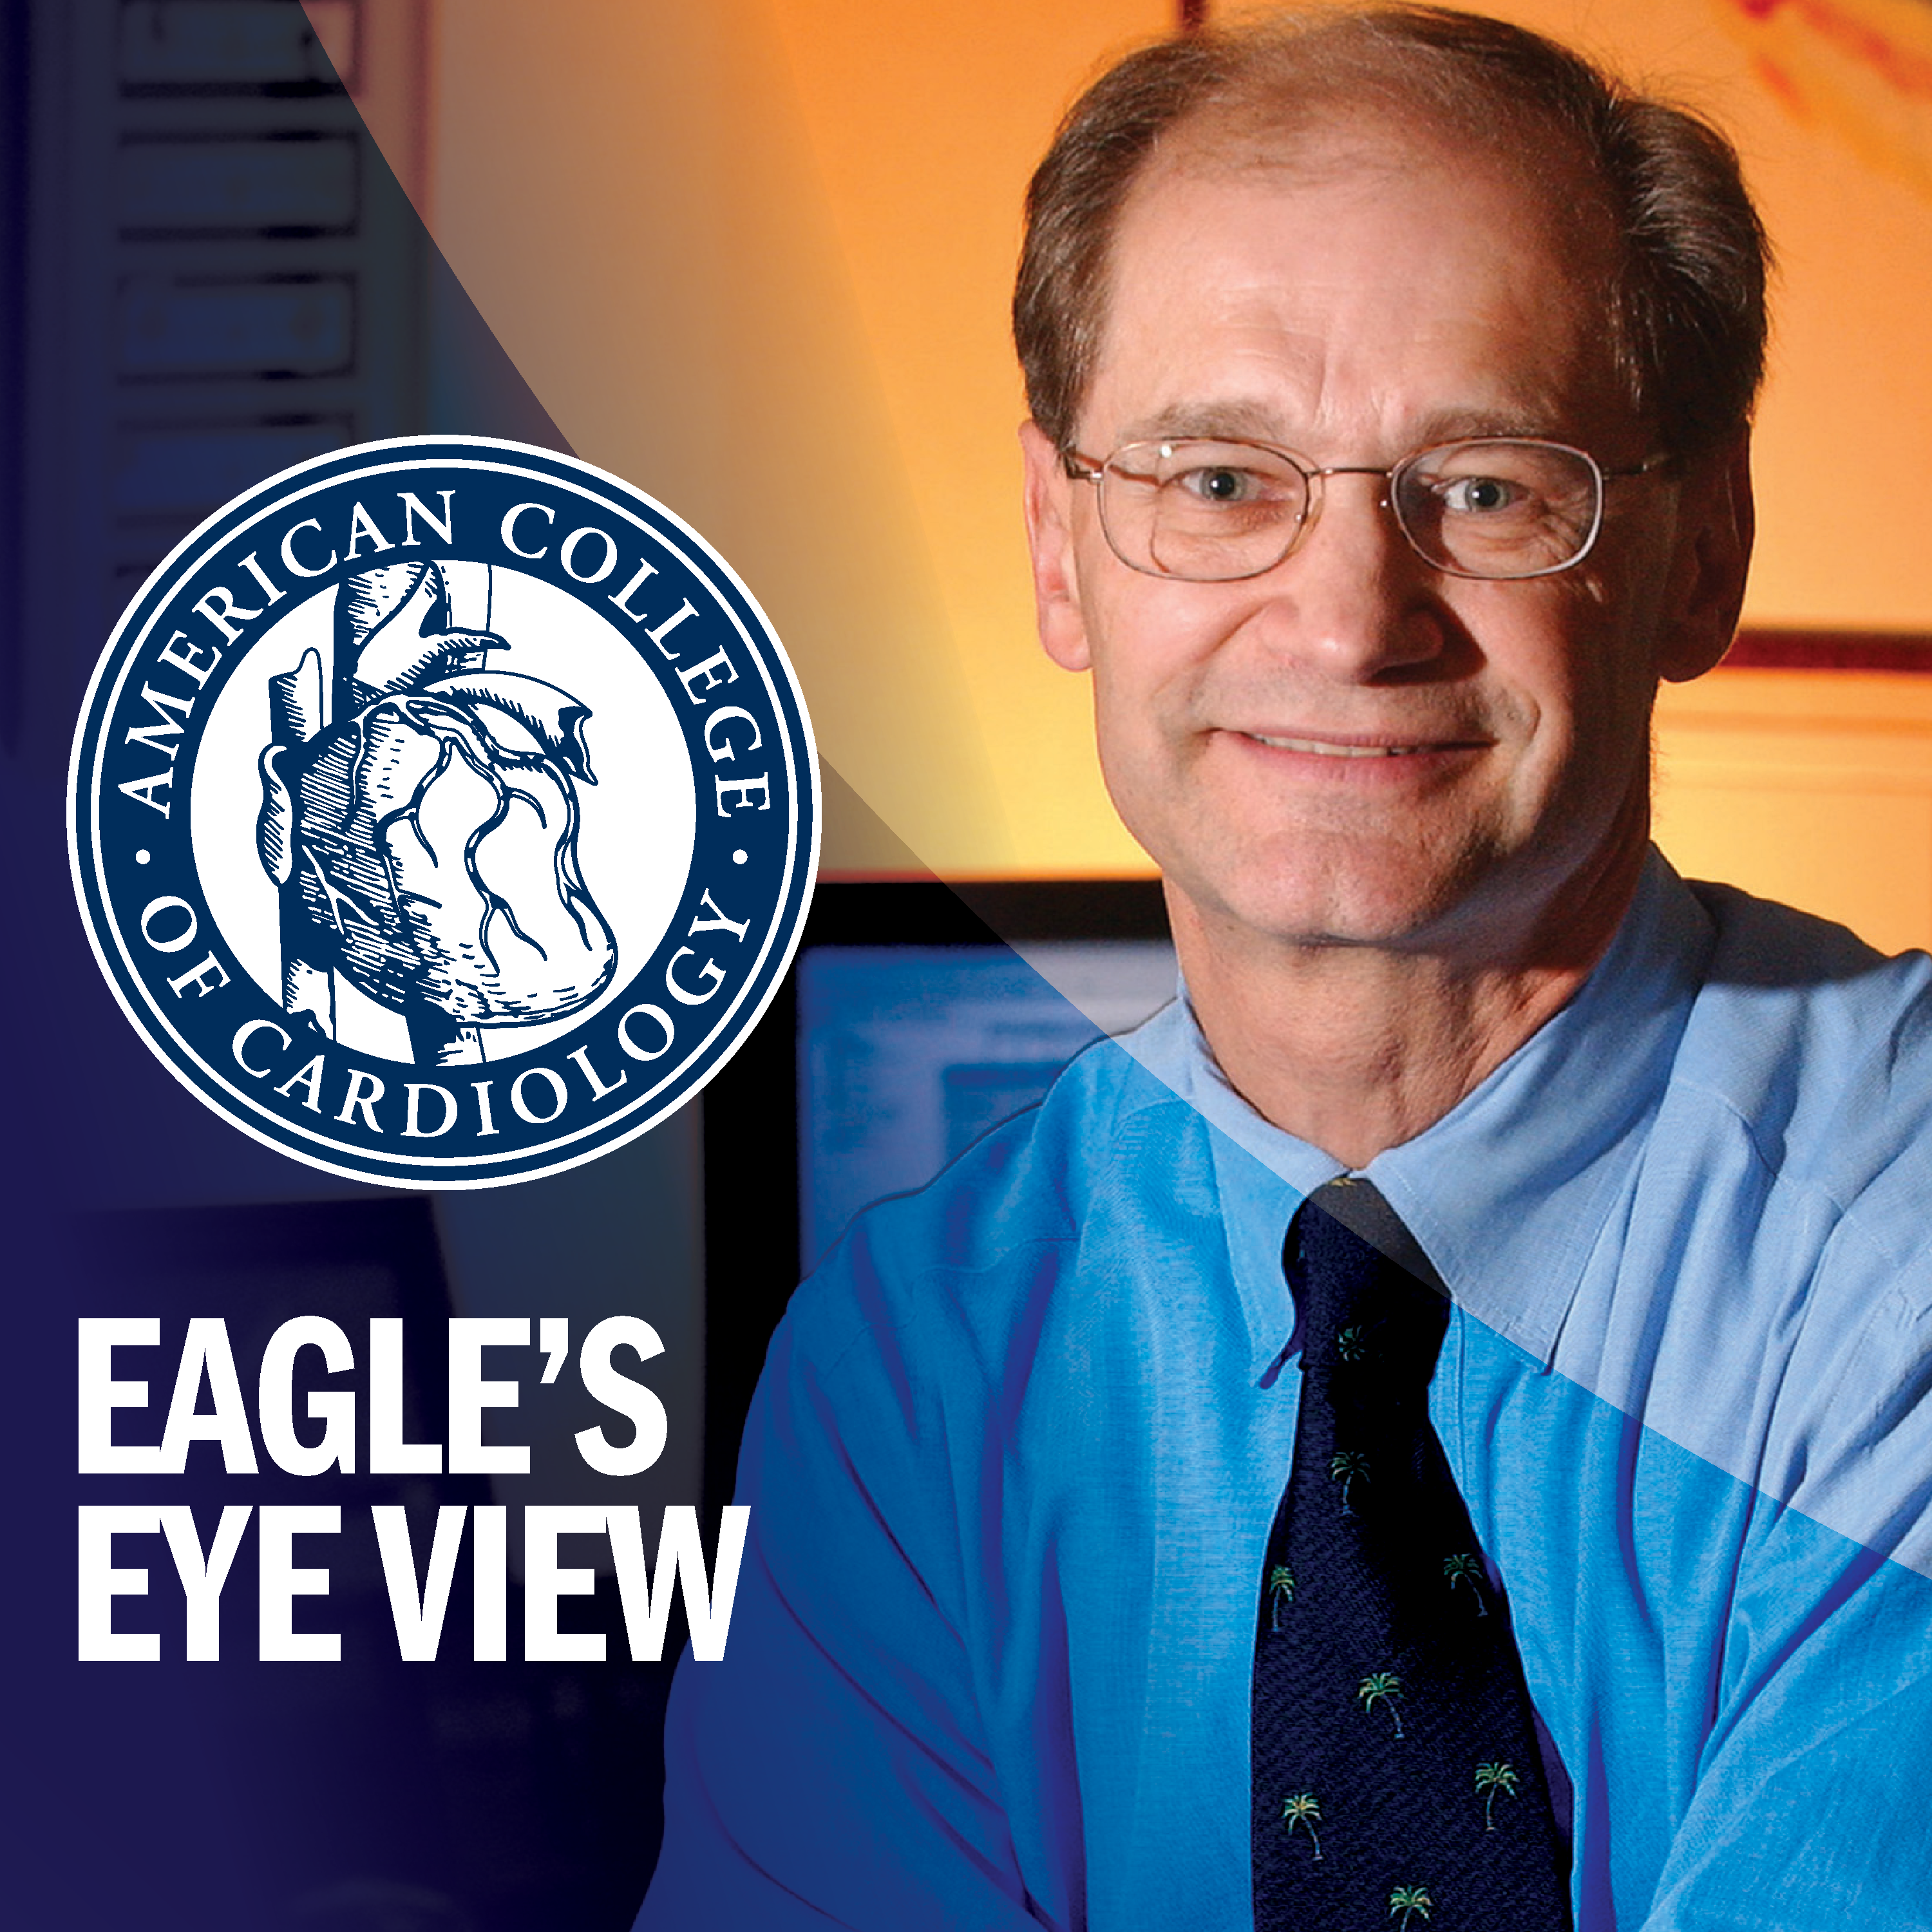 Eagle's Eye View: Your Weekly CV Update From ACC.org show art